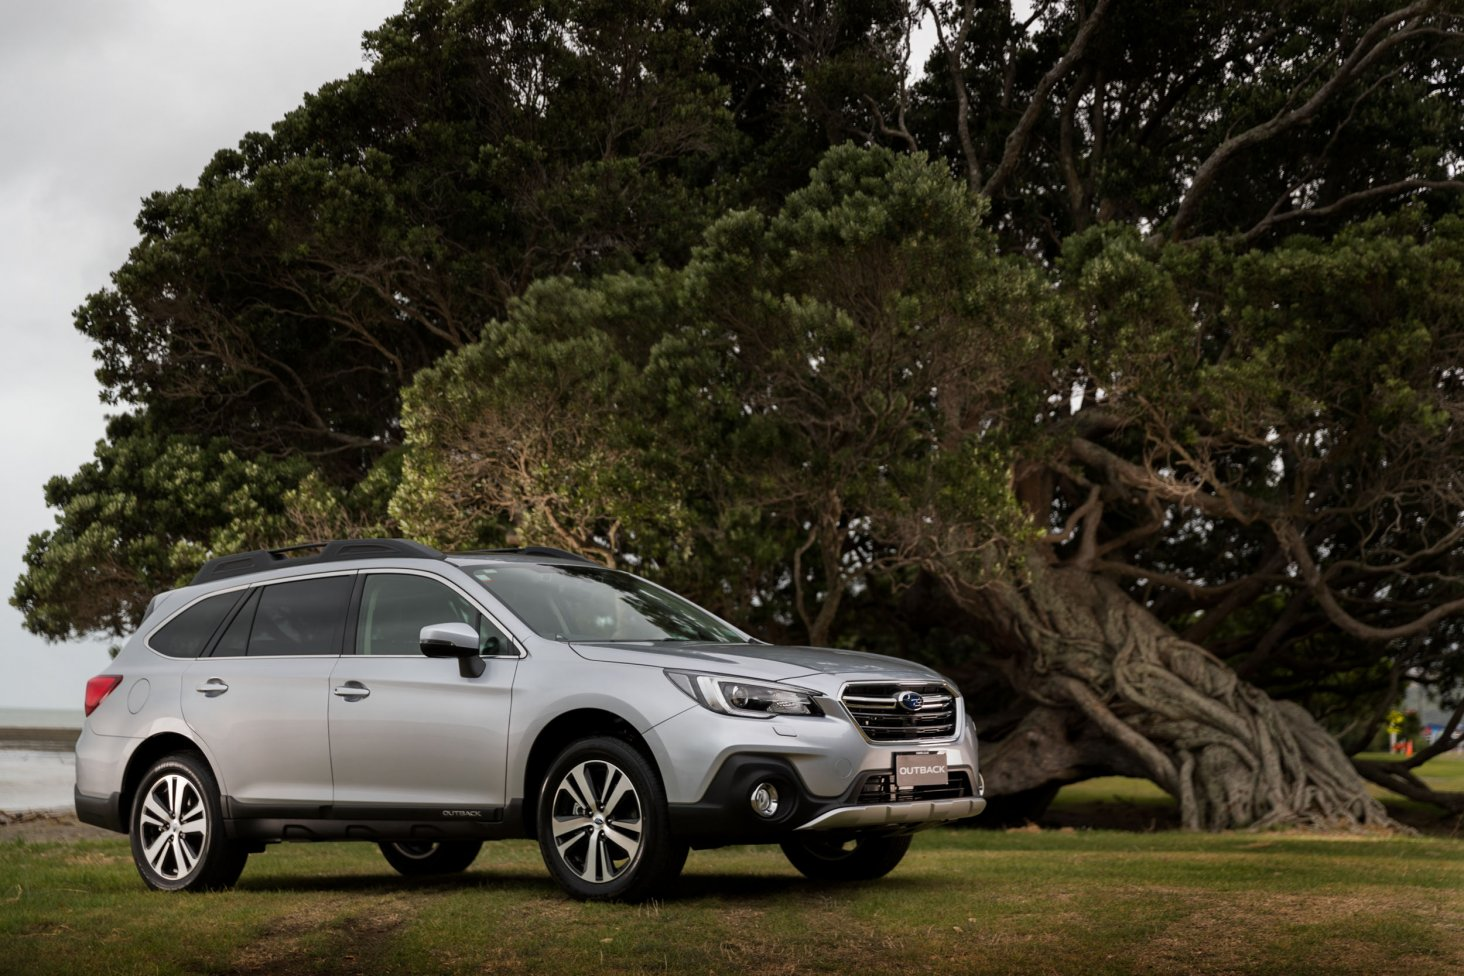 The 2018 Subaru Outback 2.5i Premium.